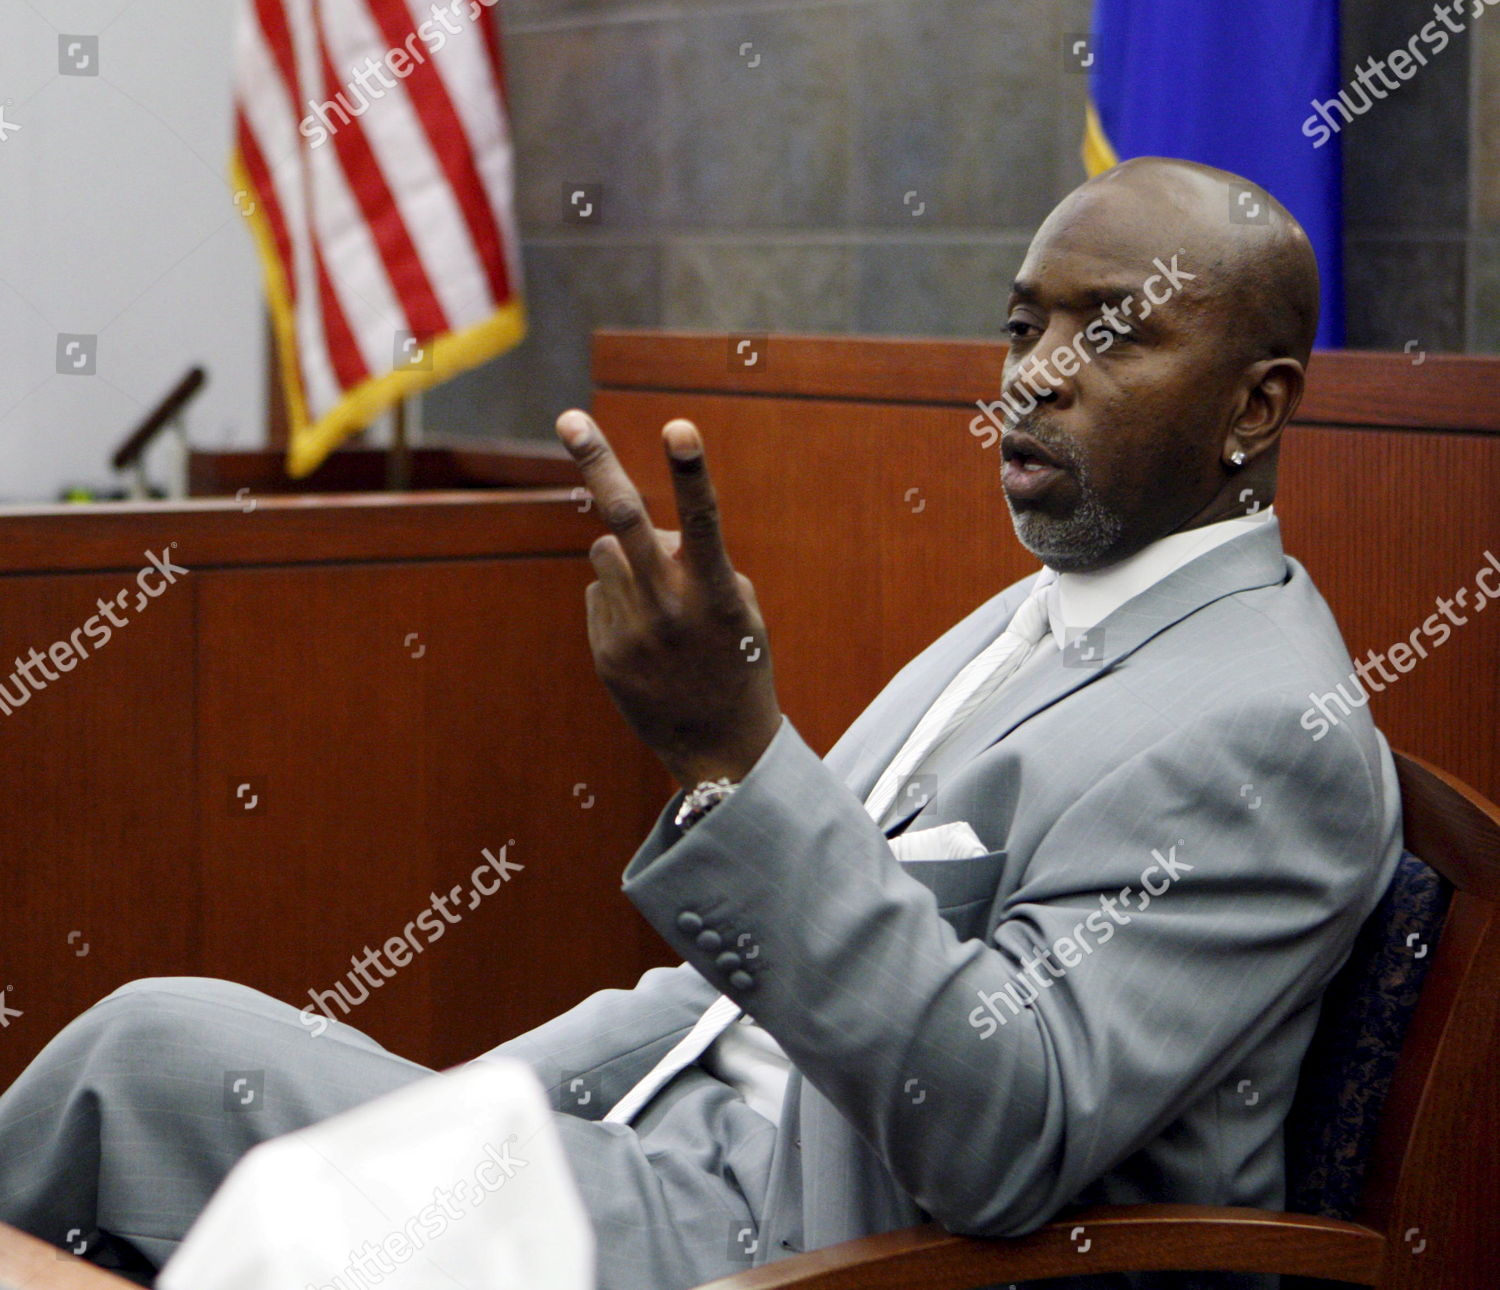 Stock photo of Usa O J Simpson Trial - Nov 2007